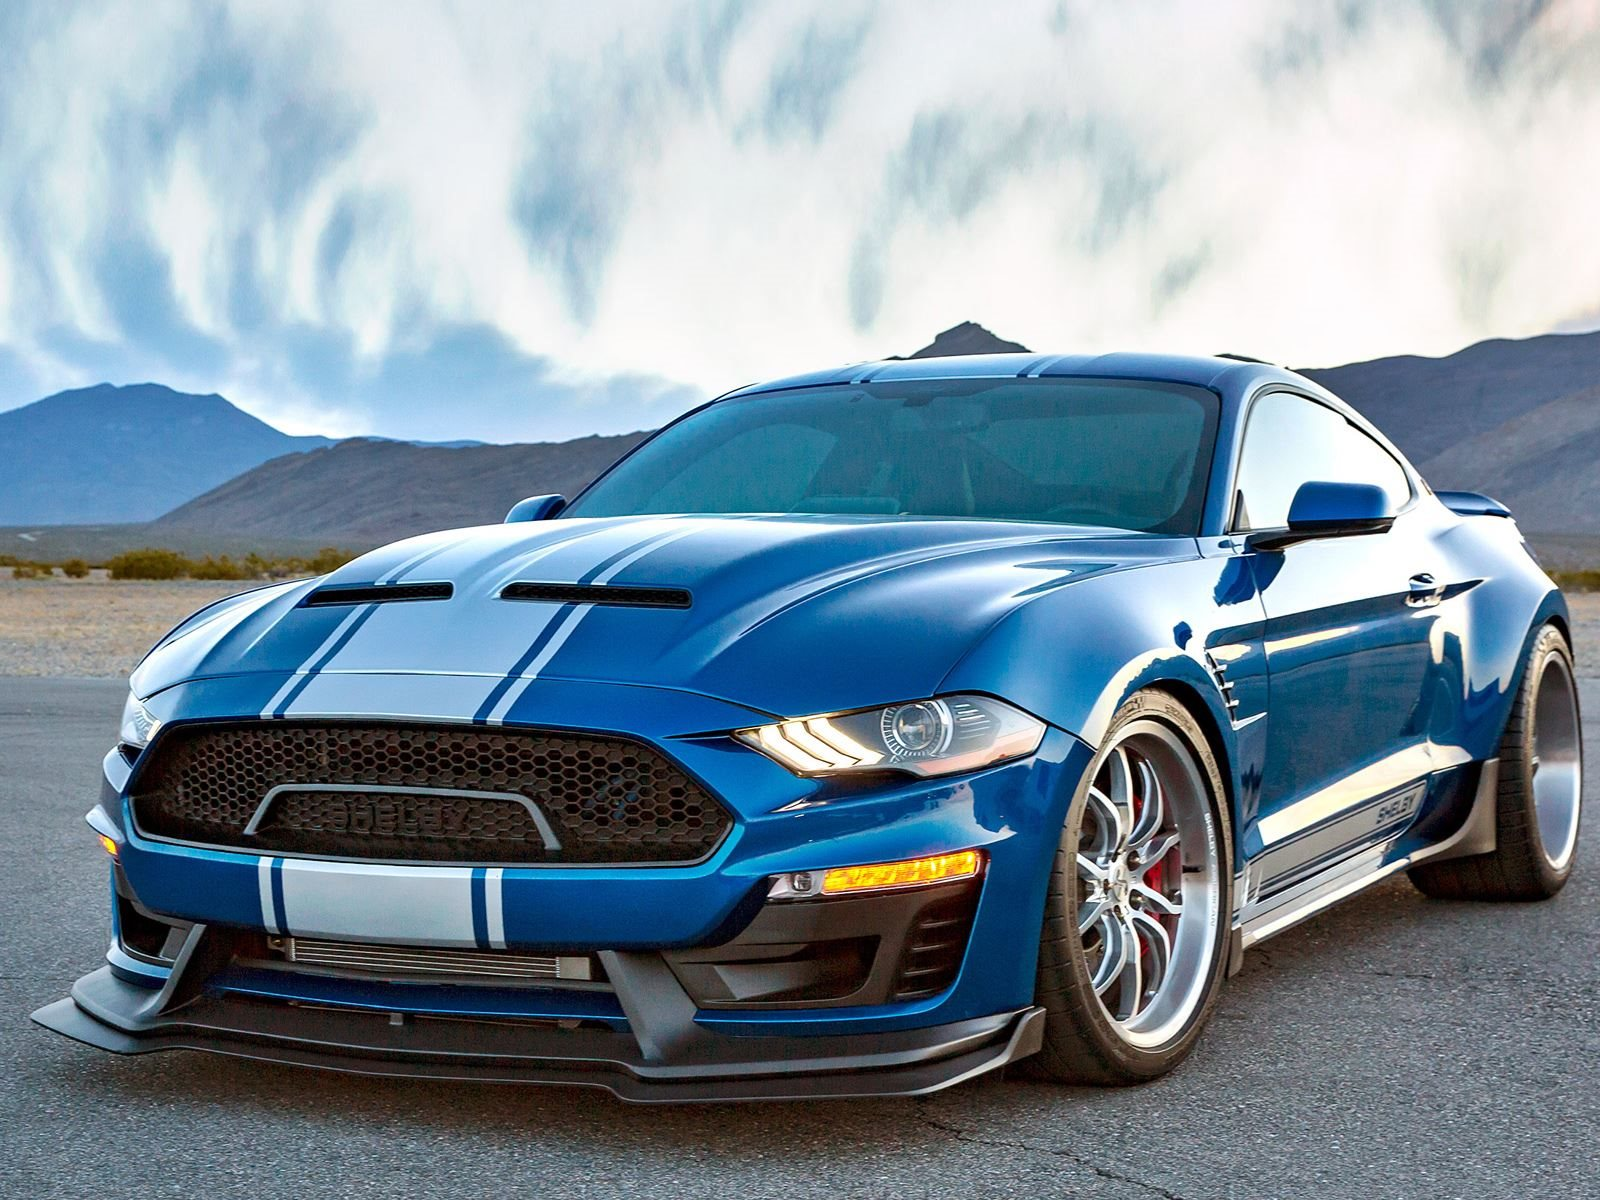 All-New 2018 Shelby Mustang Super Snake Packs 800 HP - CarBuzz